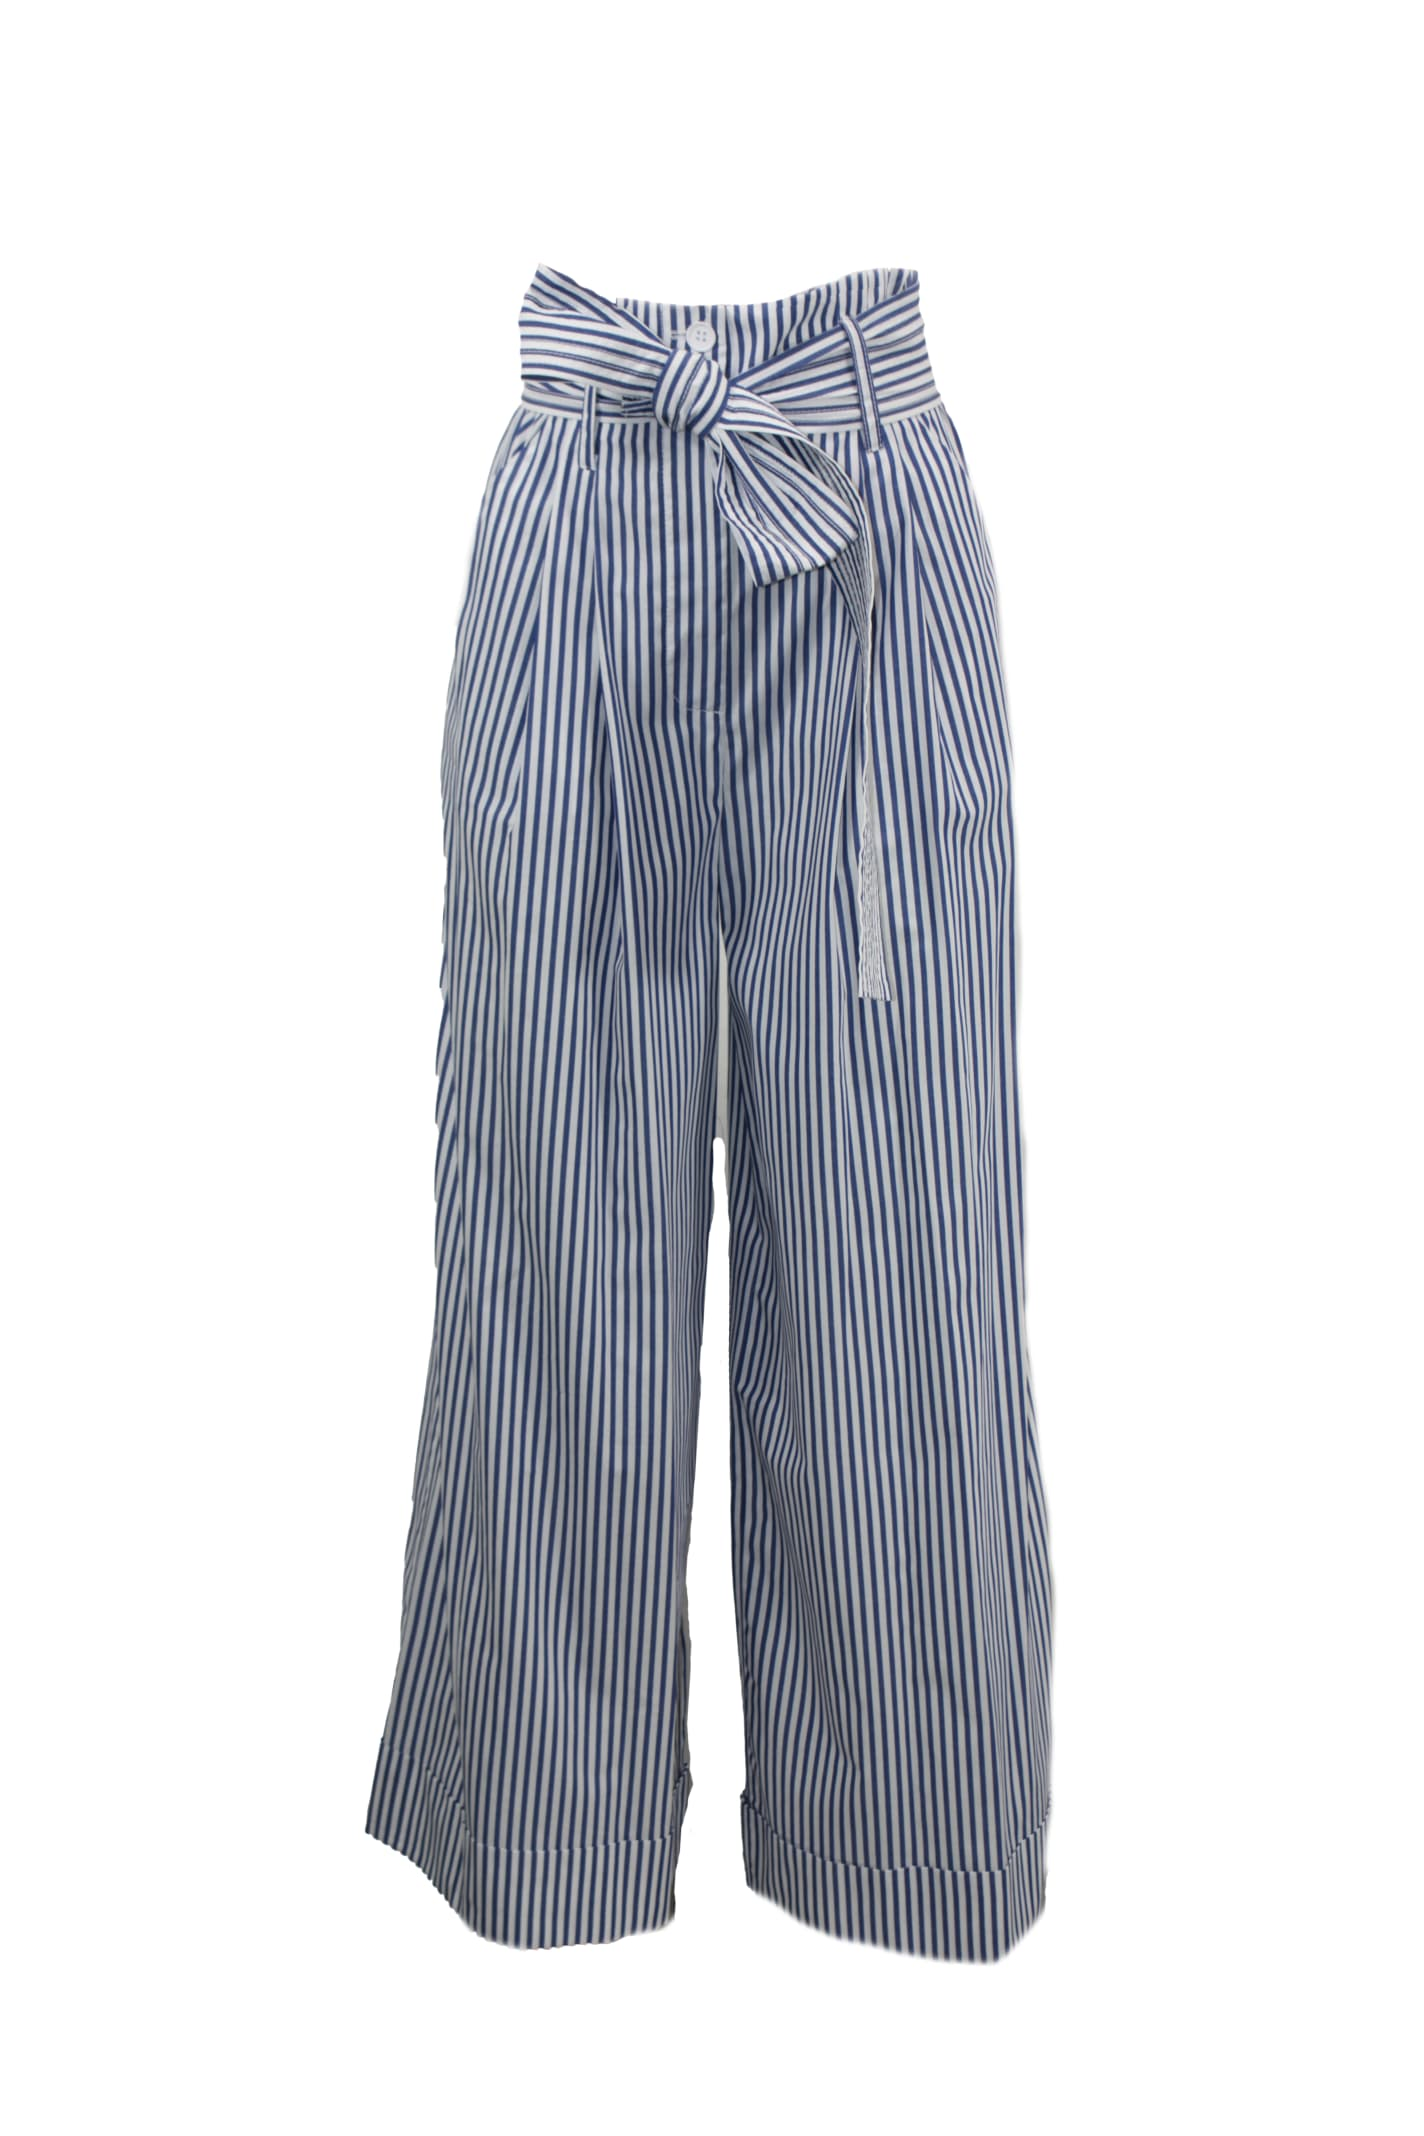 P.a.r.o.s.h. BELTED COTTON STRIPED TROUSERS